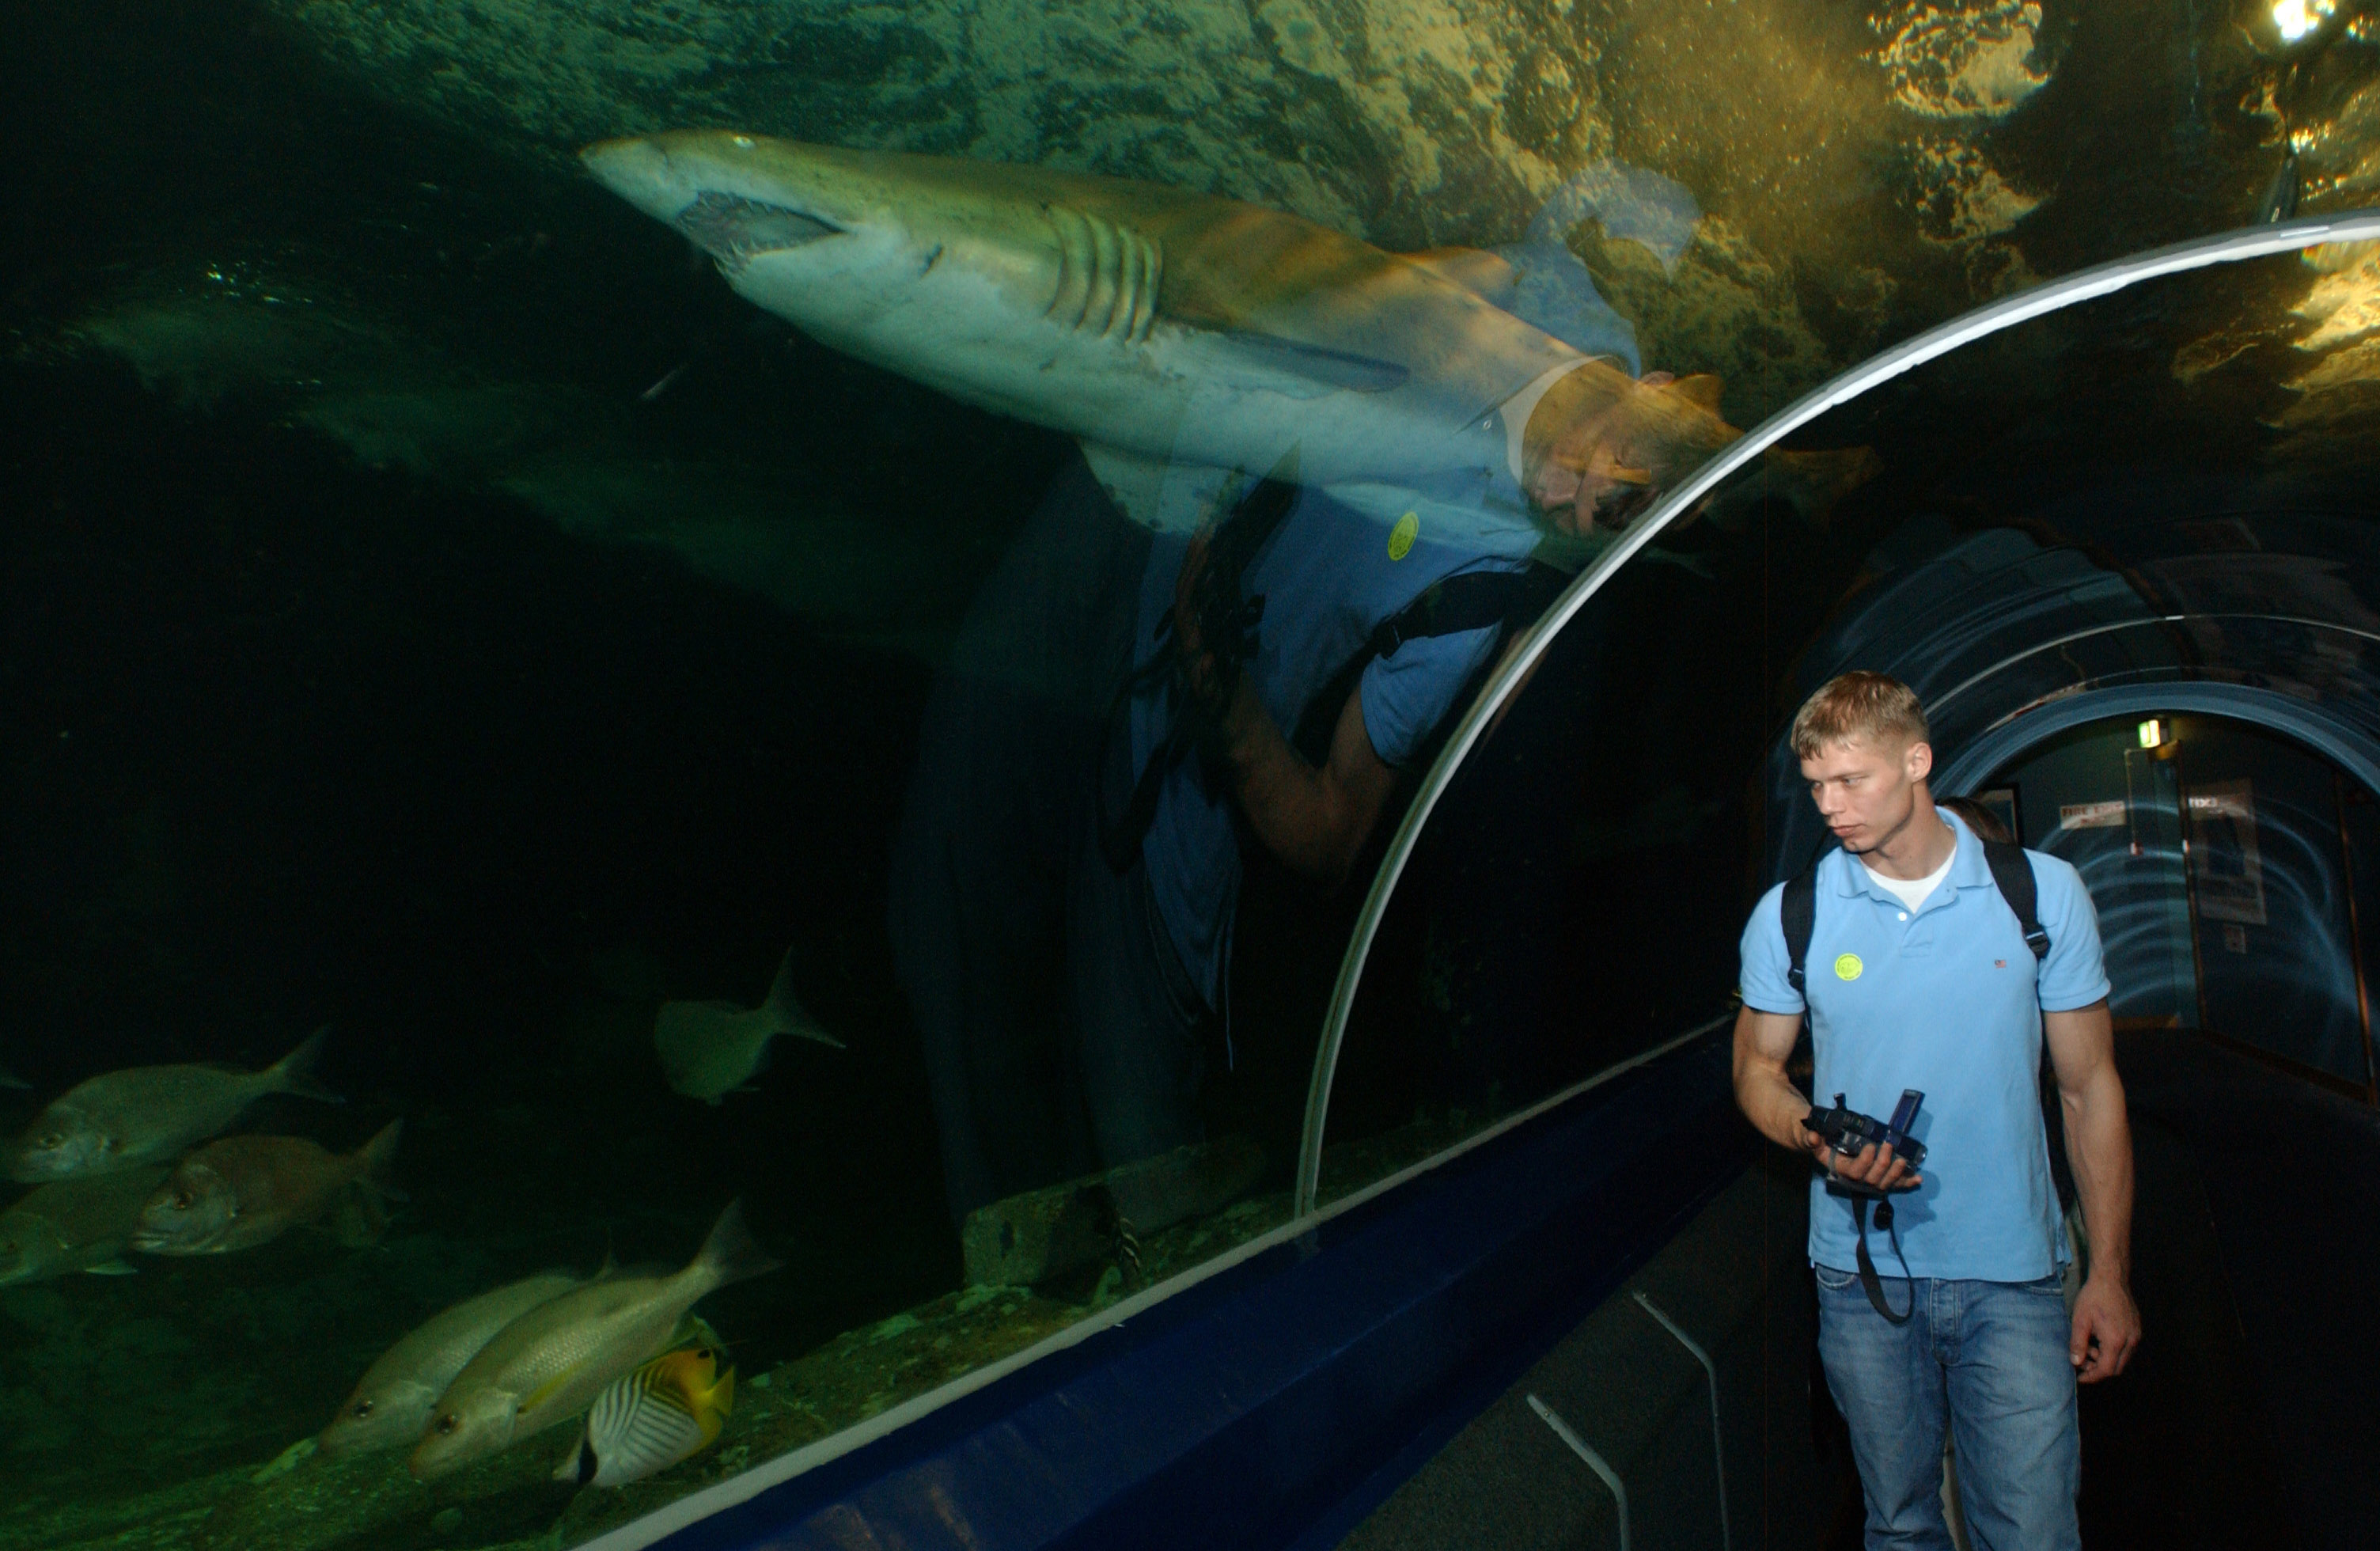 Fish aquarium in brisbane - File Us Navy 060125 N 2959l 092 Airman Marcus Geisler From Lake